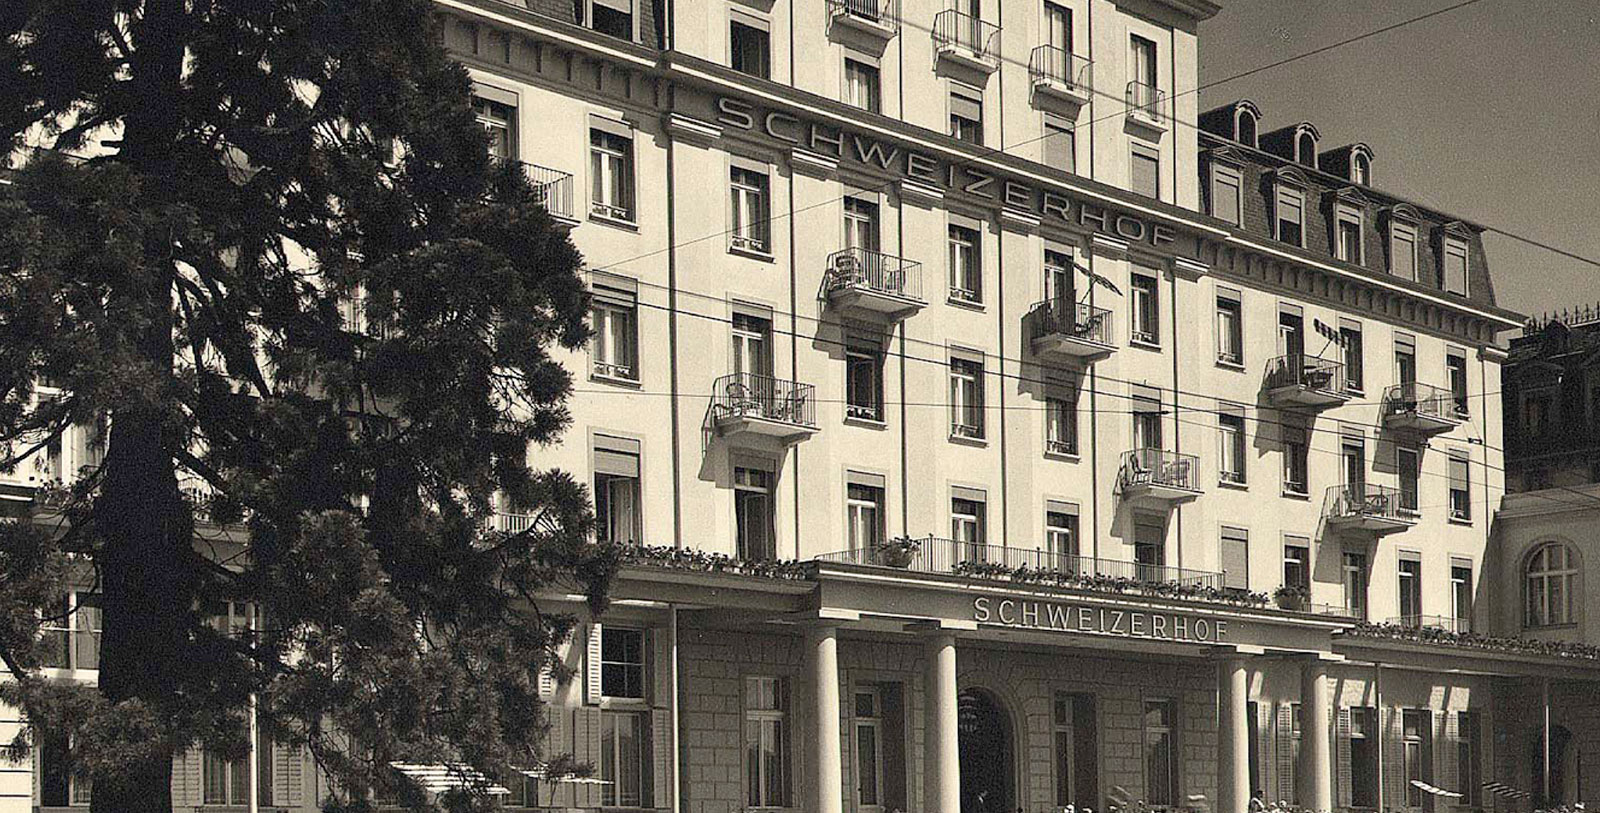 Image of Historic Exterior, Hotel Schweizerhof Luzern, Switzerland, 1845, Member of Historic Hotels Worldwide, Discover